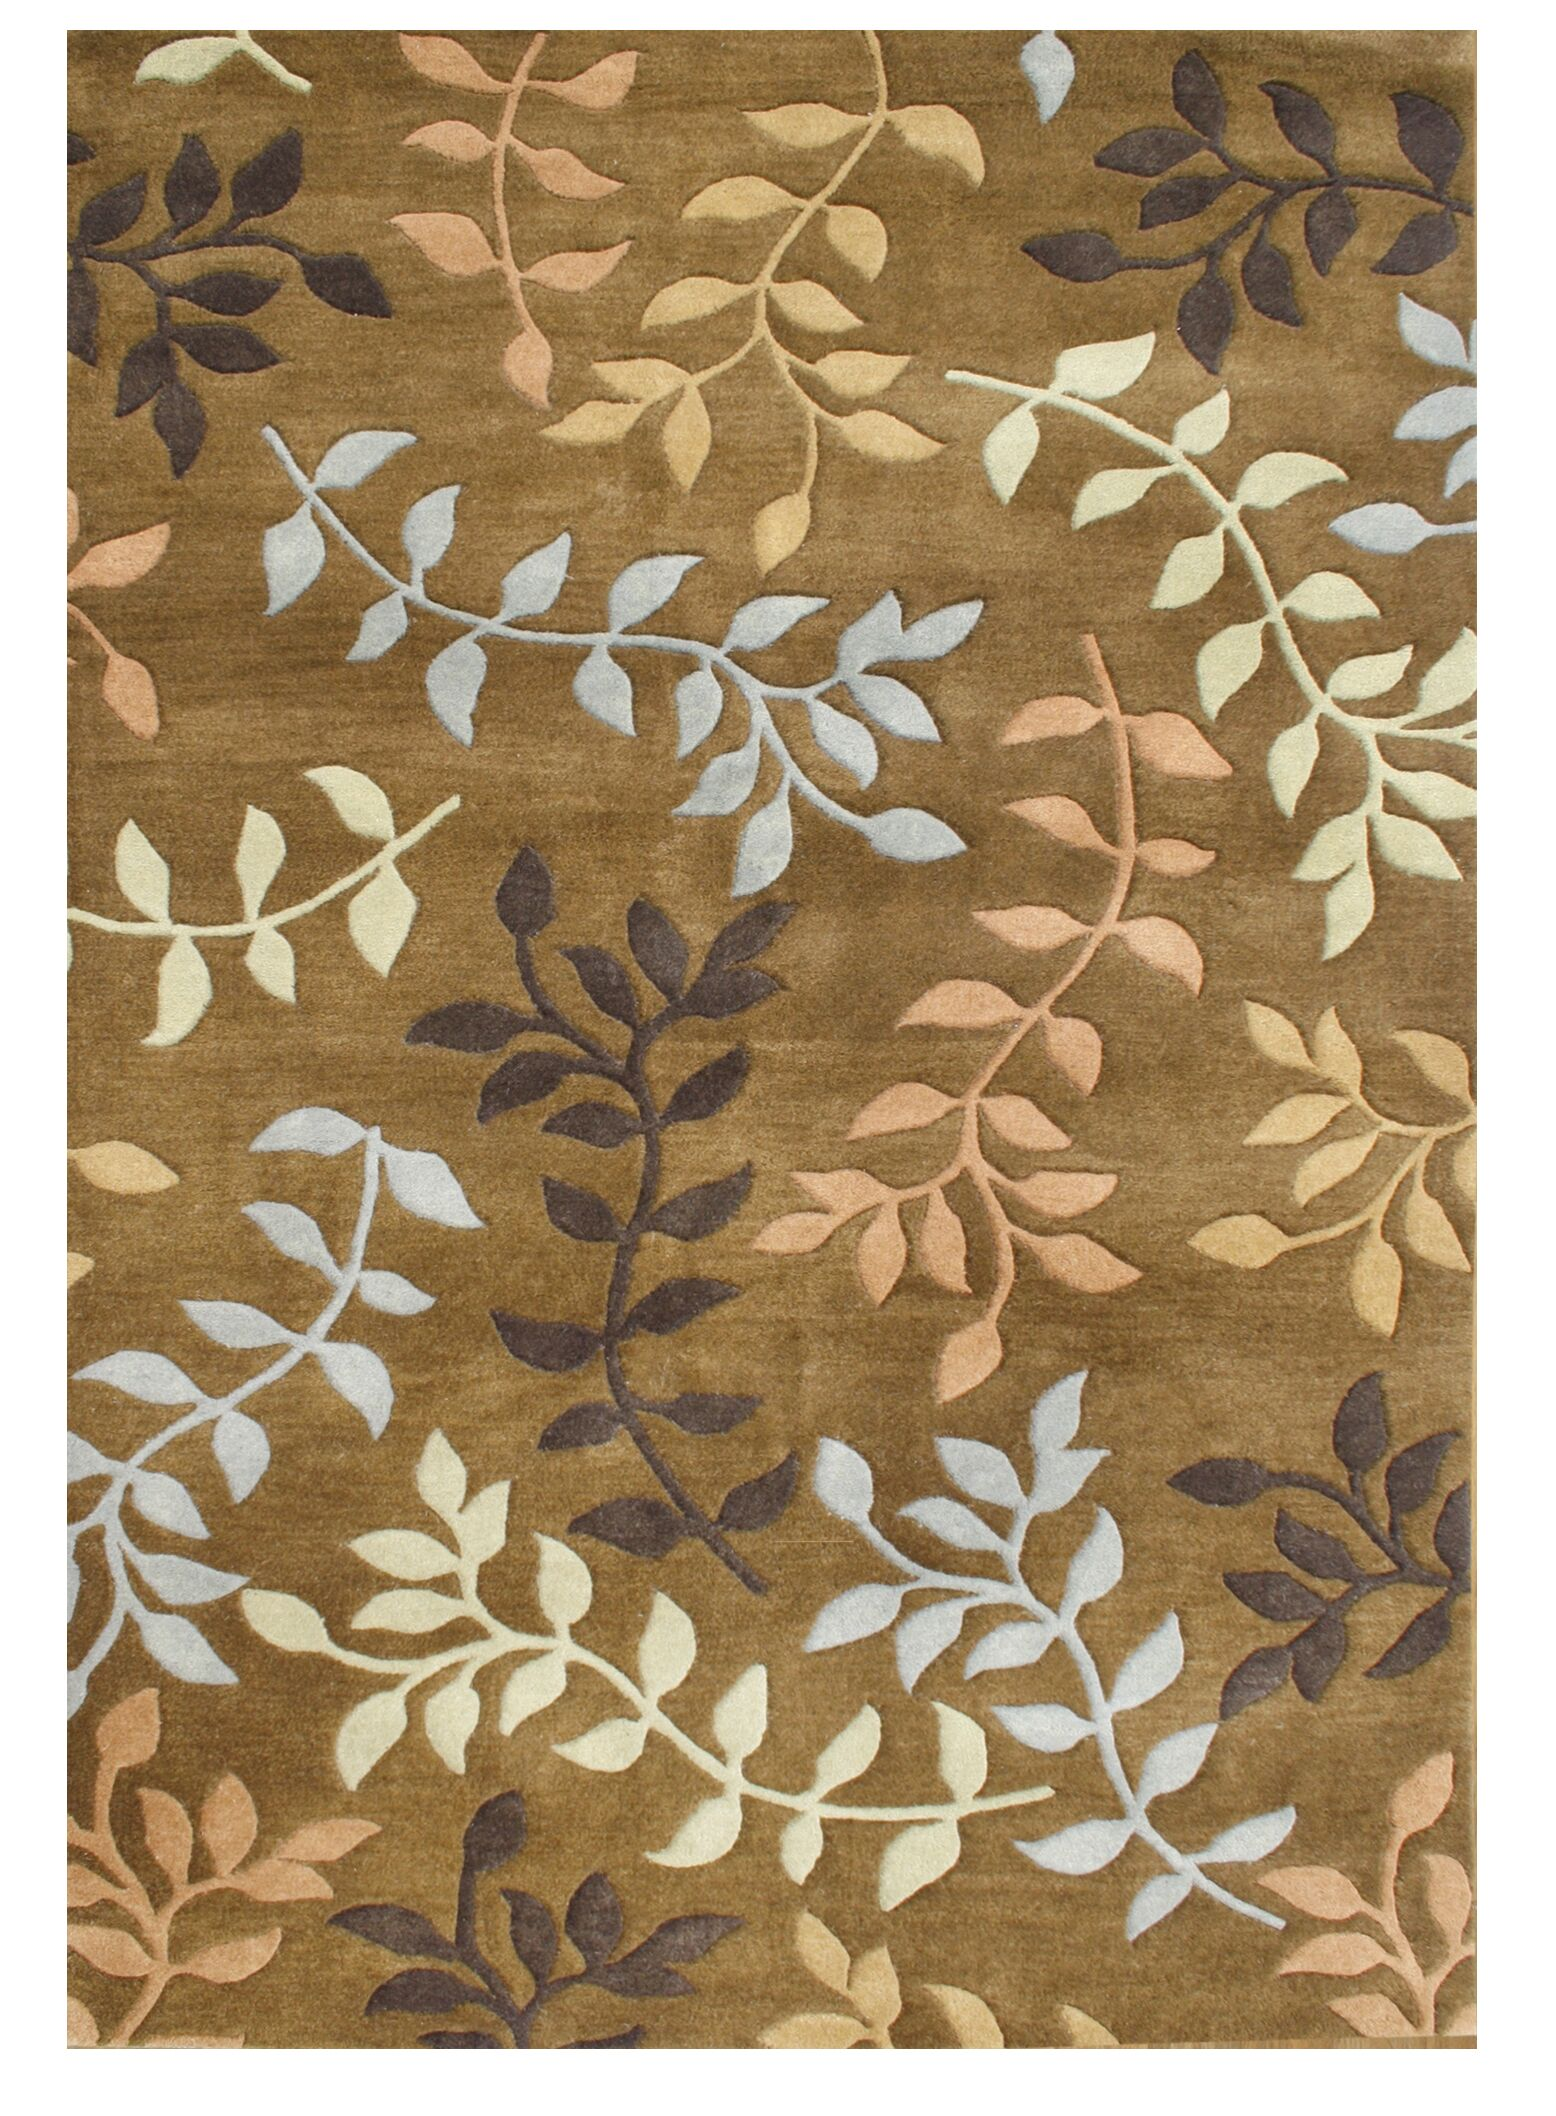 De Aviles Hand-Tufted Brown Area Rug Rug Size: 8' x 10'